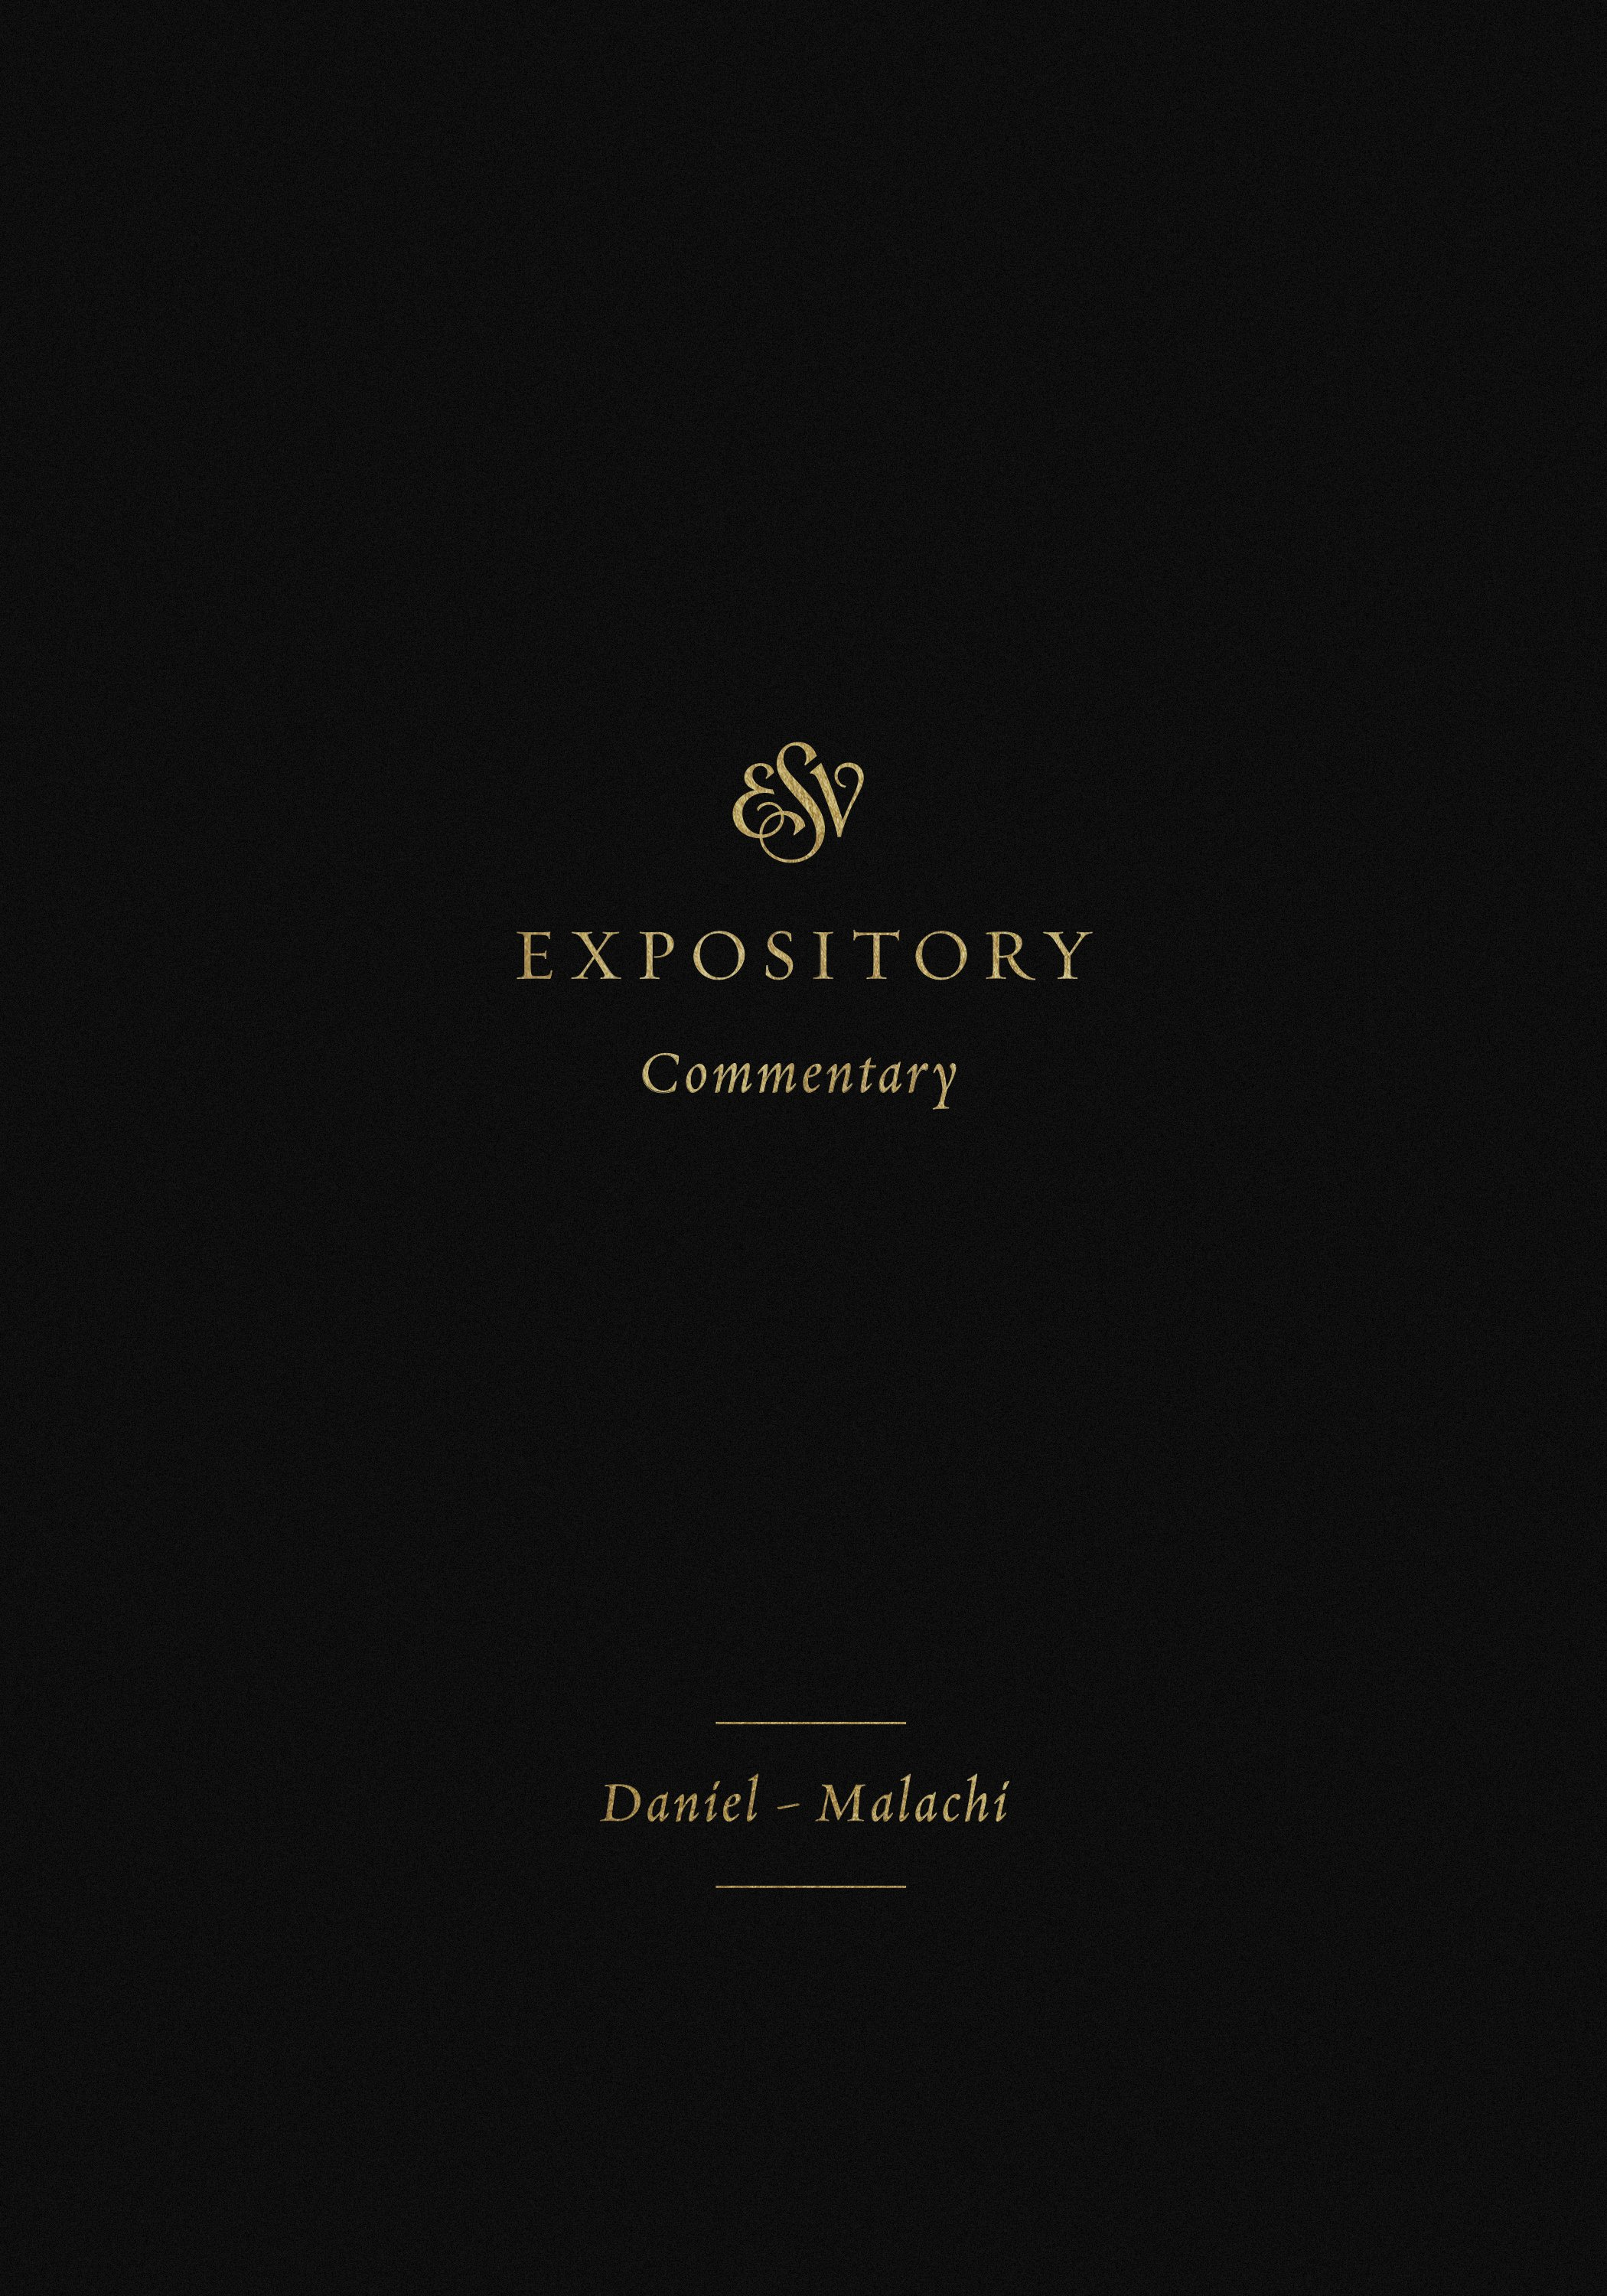 The ESV Bible Expository Commentary: Daniel-Malachi